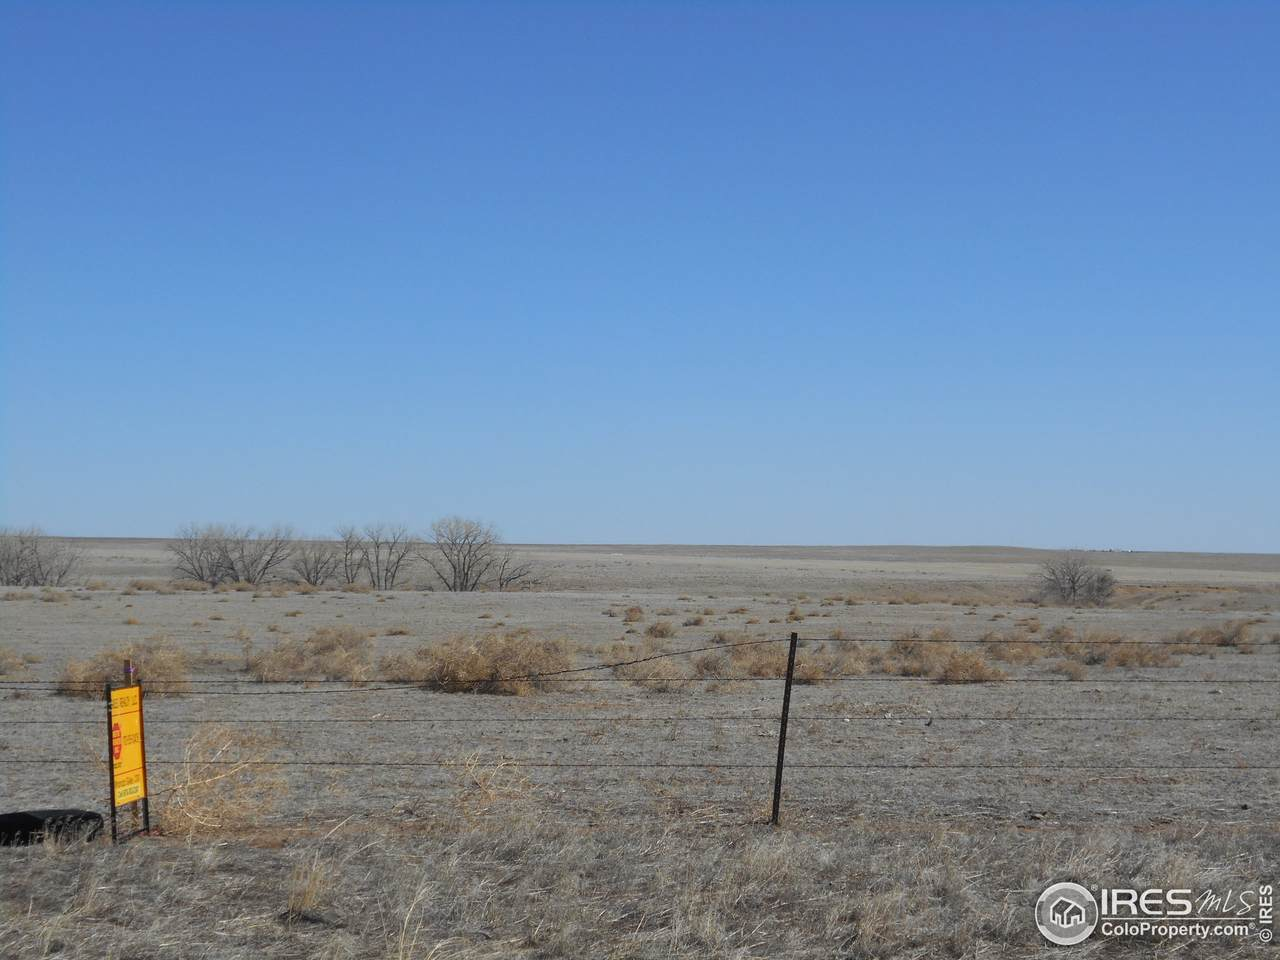 Tbd County Road 43 And 96 - Photo 1